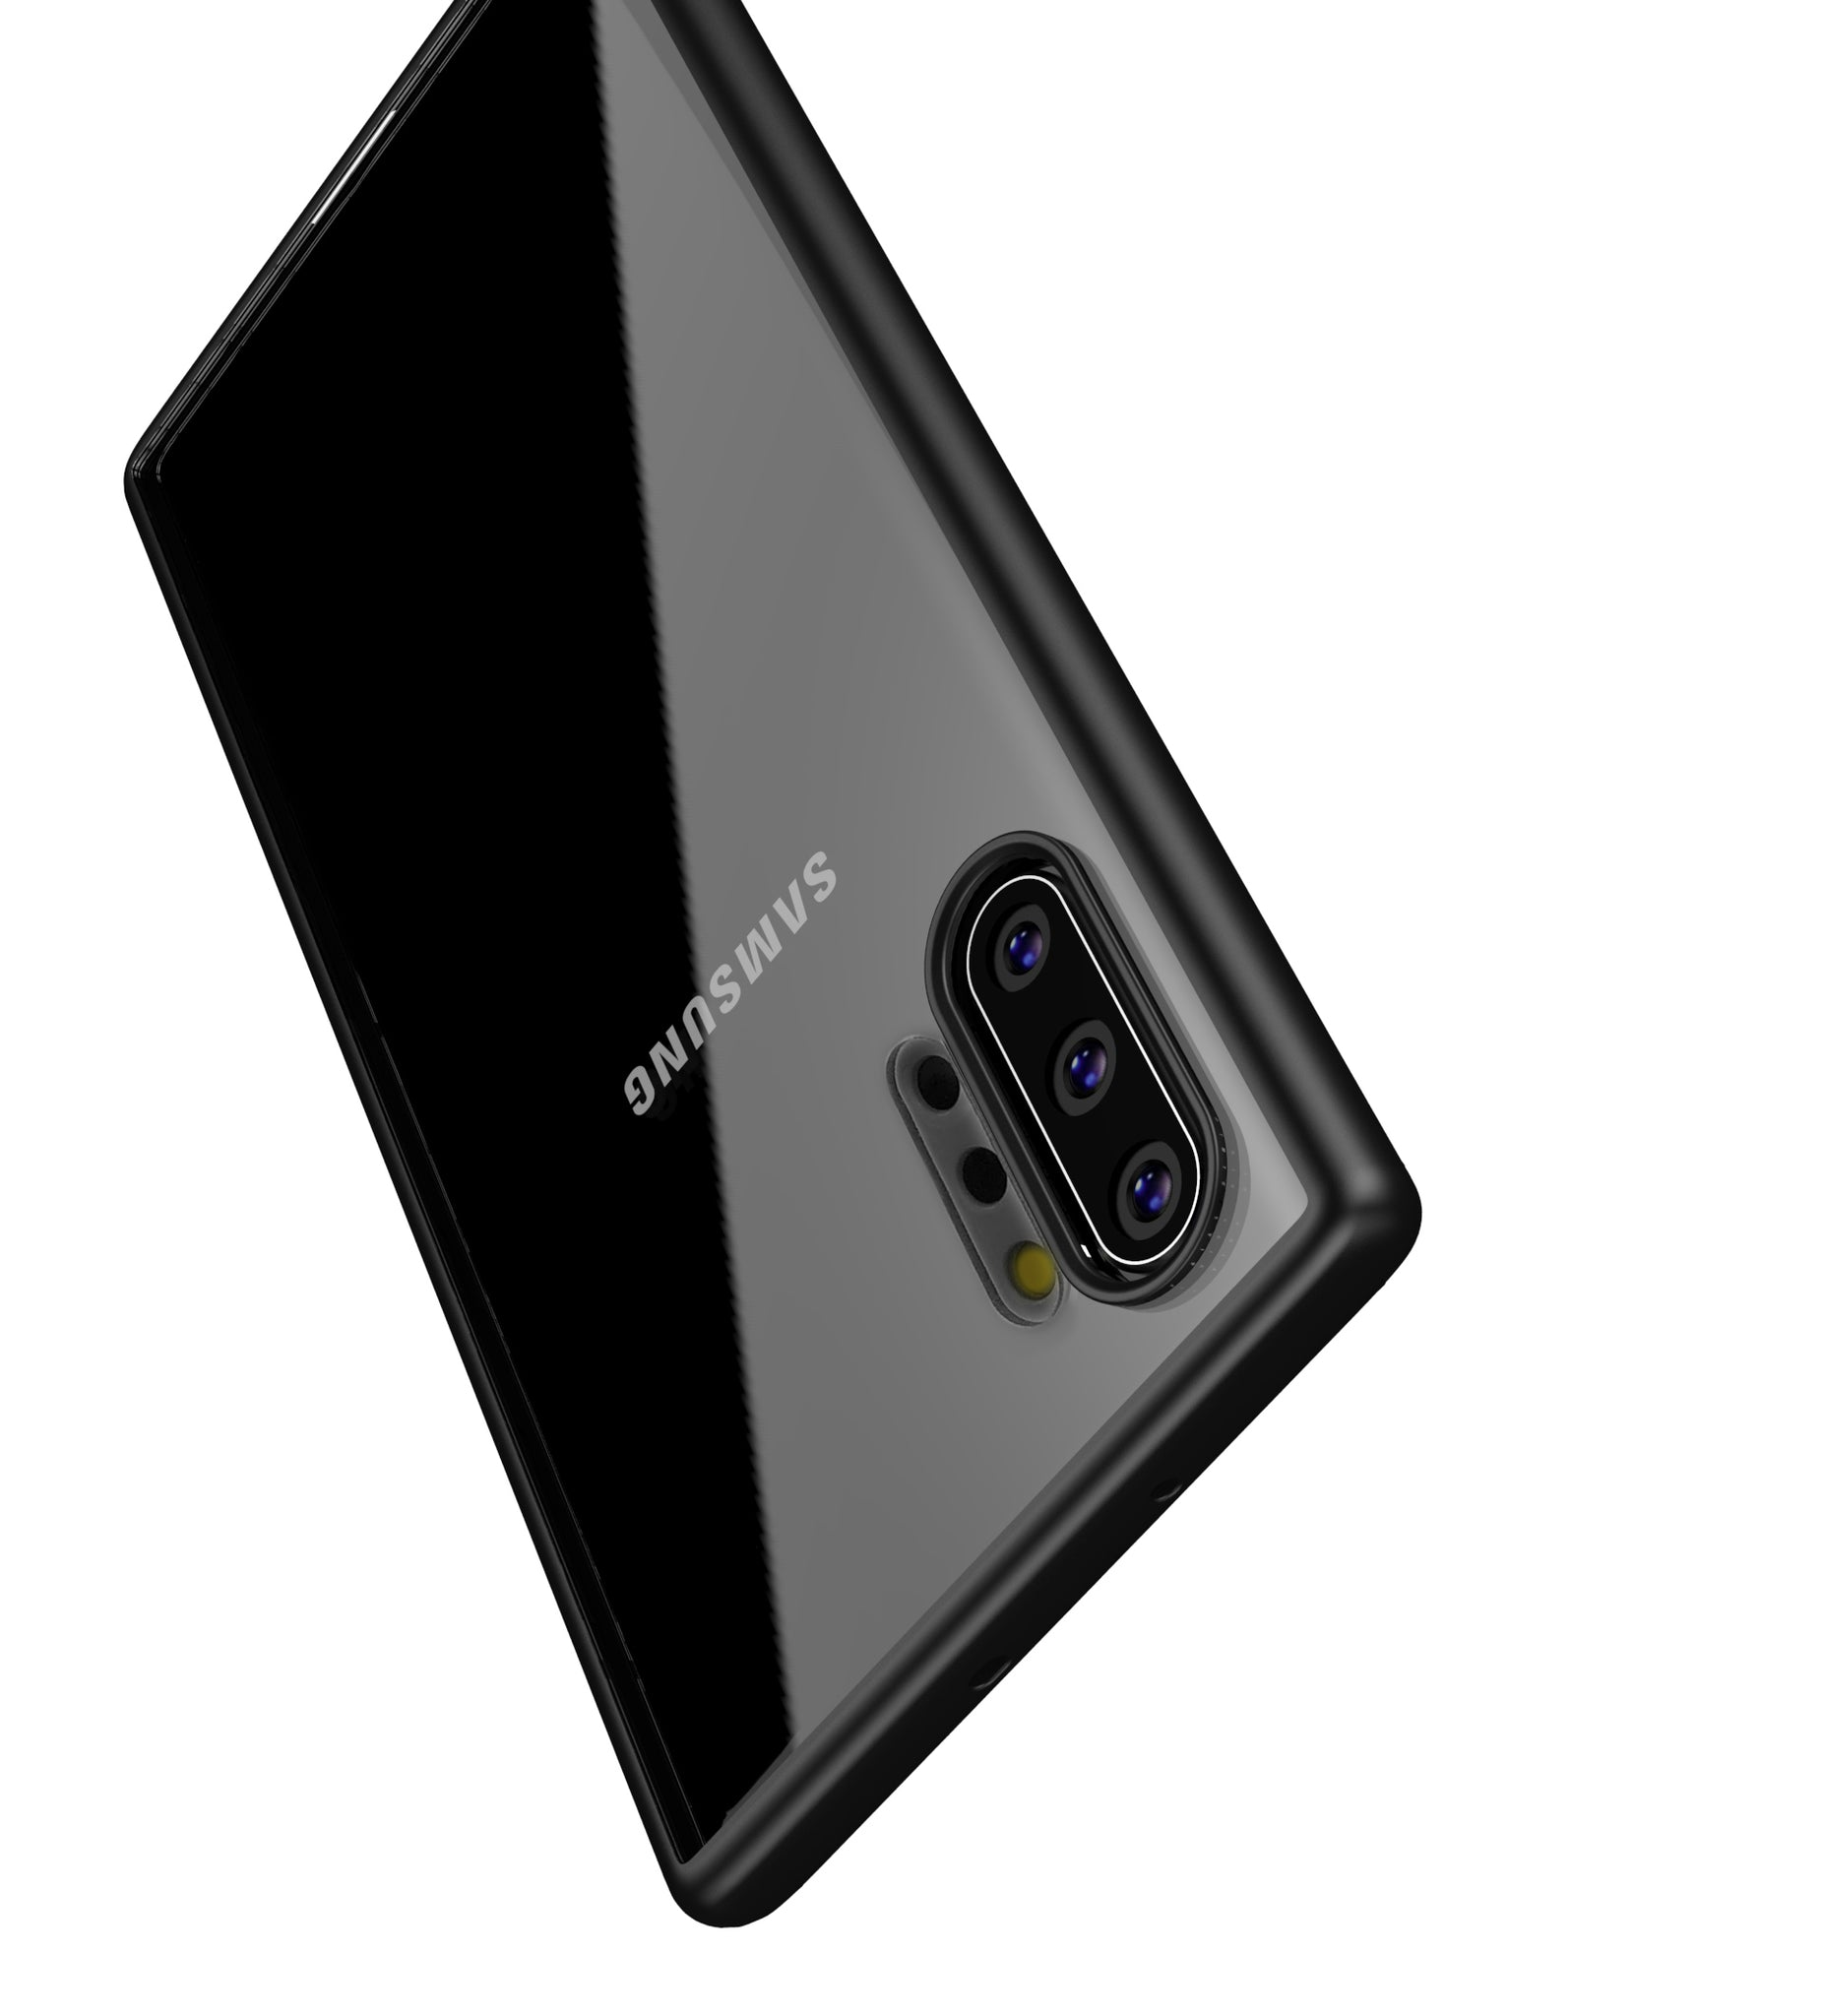 HYTX Bright Color Note 10+ ( Black )